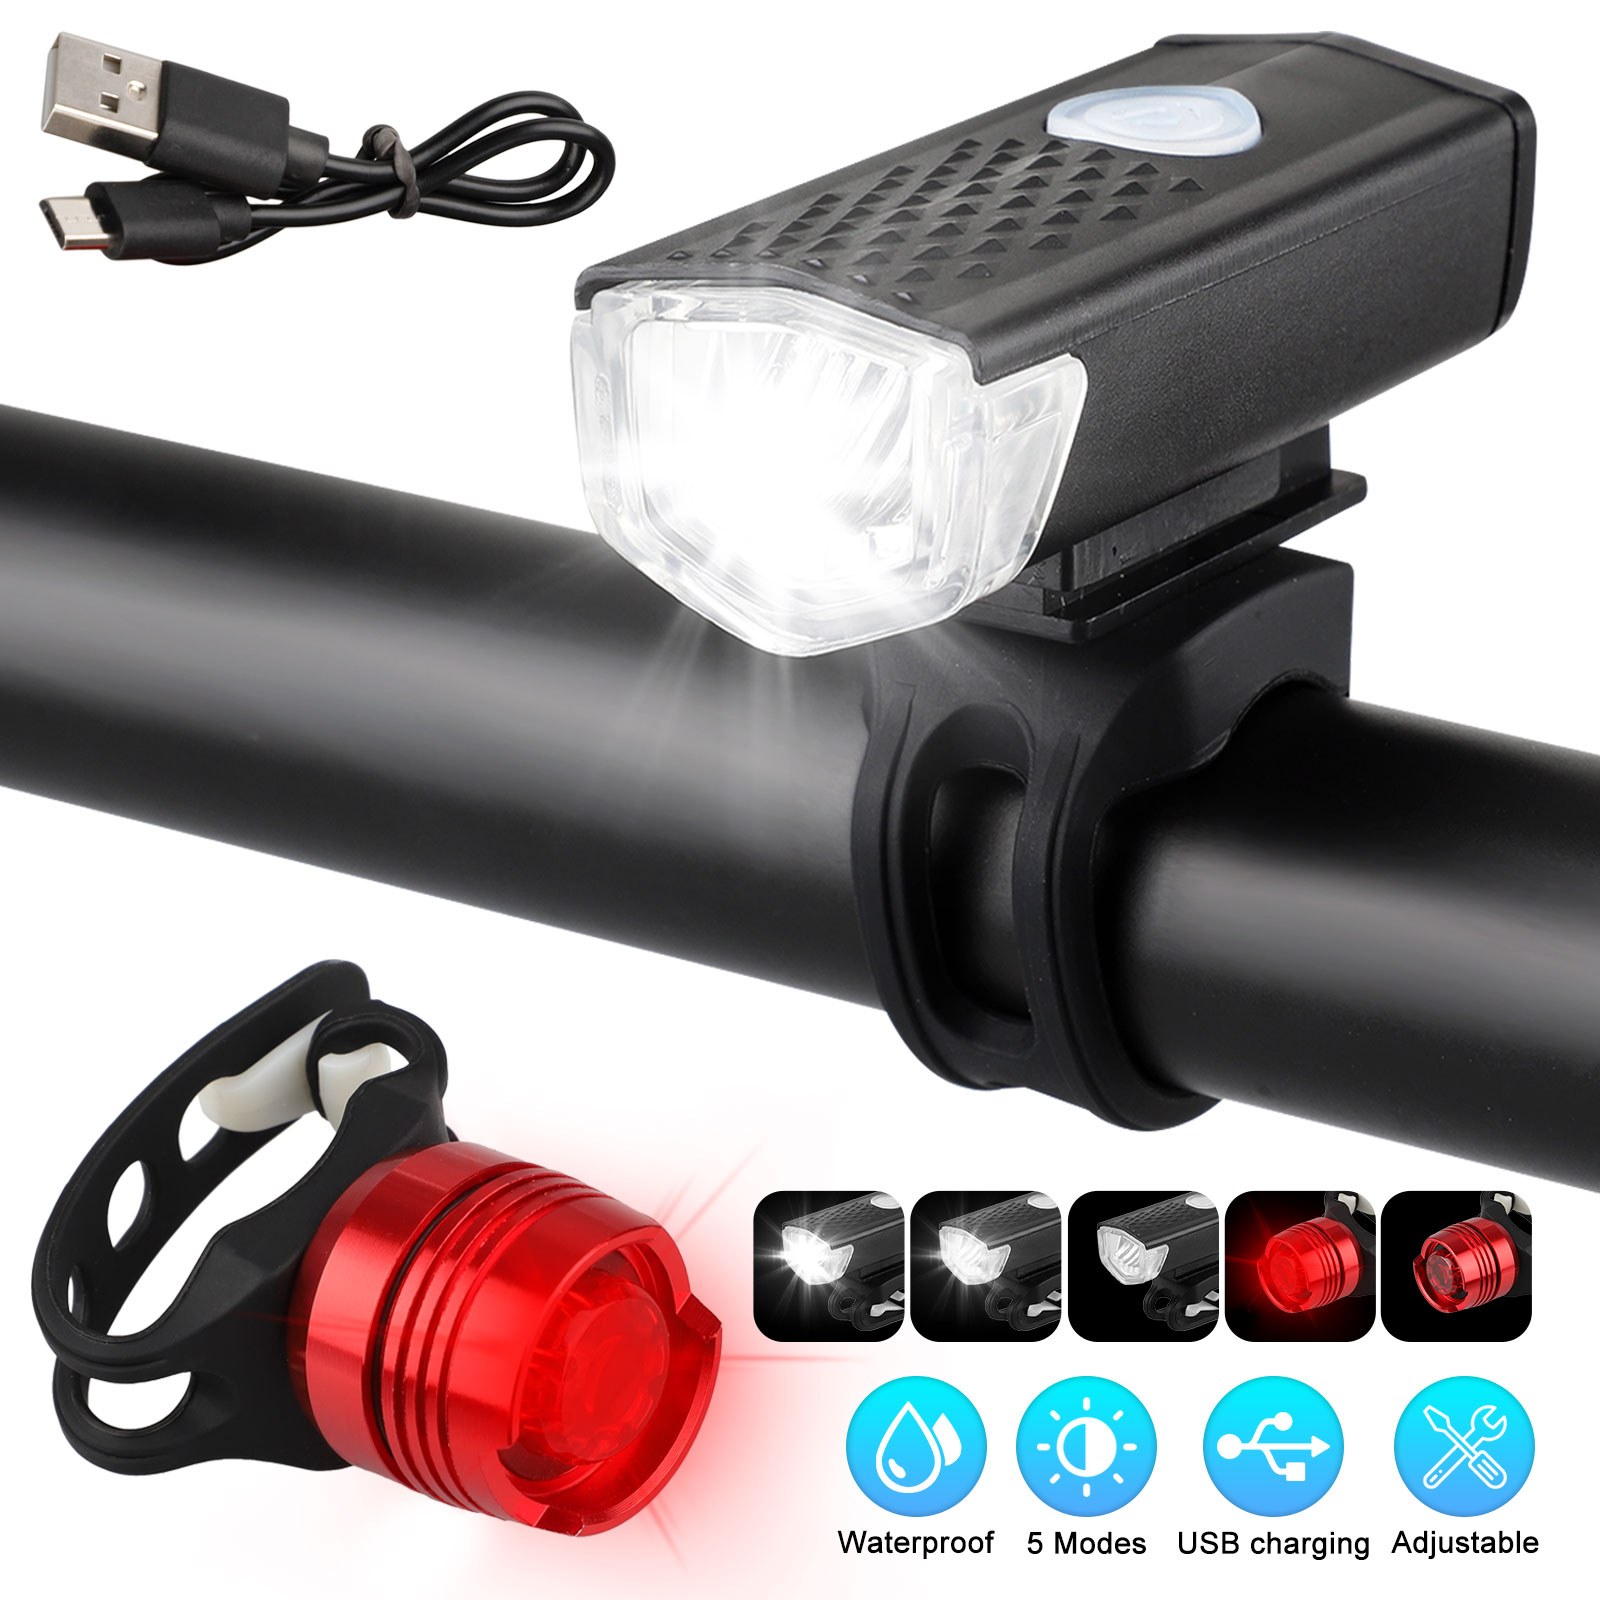 LED-USB-Rechargeable-Bycicle-Light-Headlamp-Headlight-Bike-Front-Rear-Lamp-3Mode